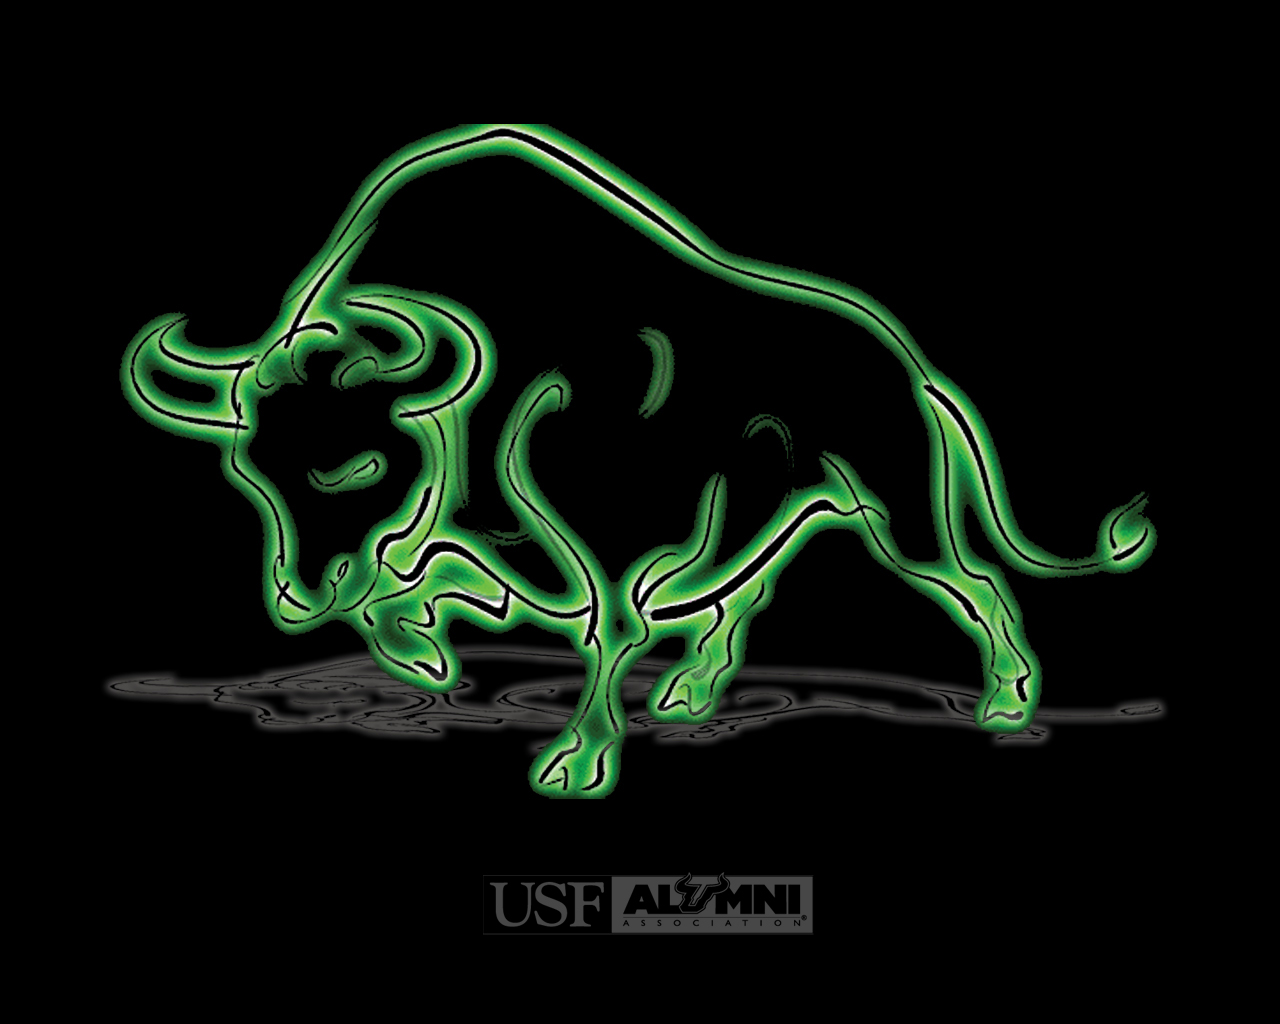 USF Alumni USF Wallpaper